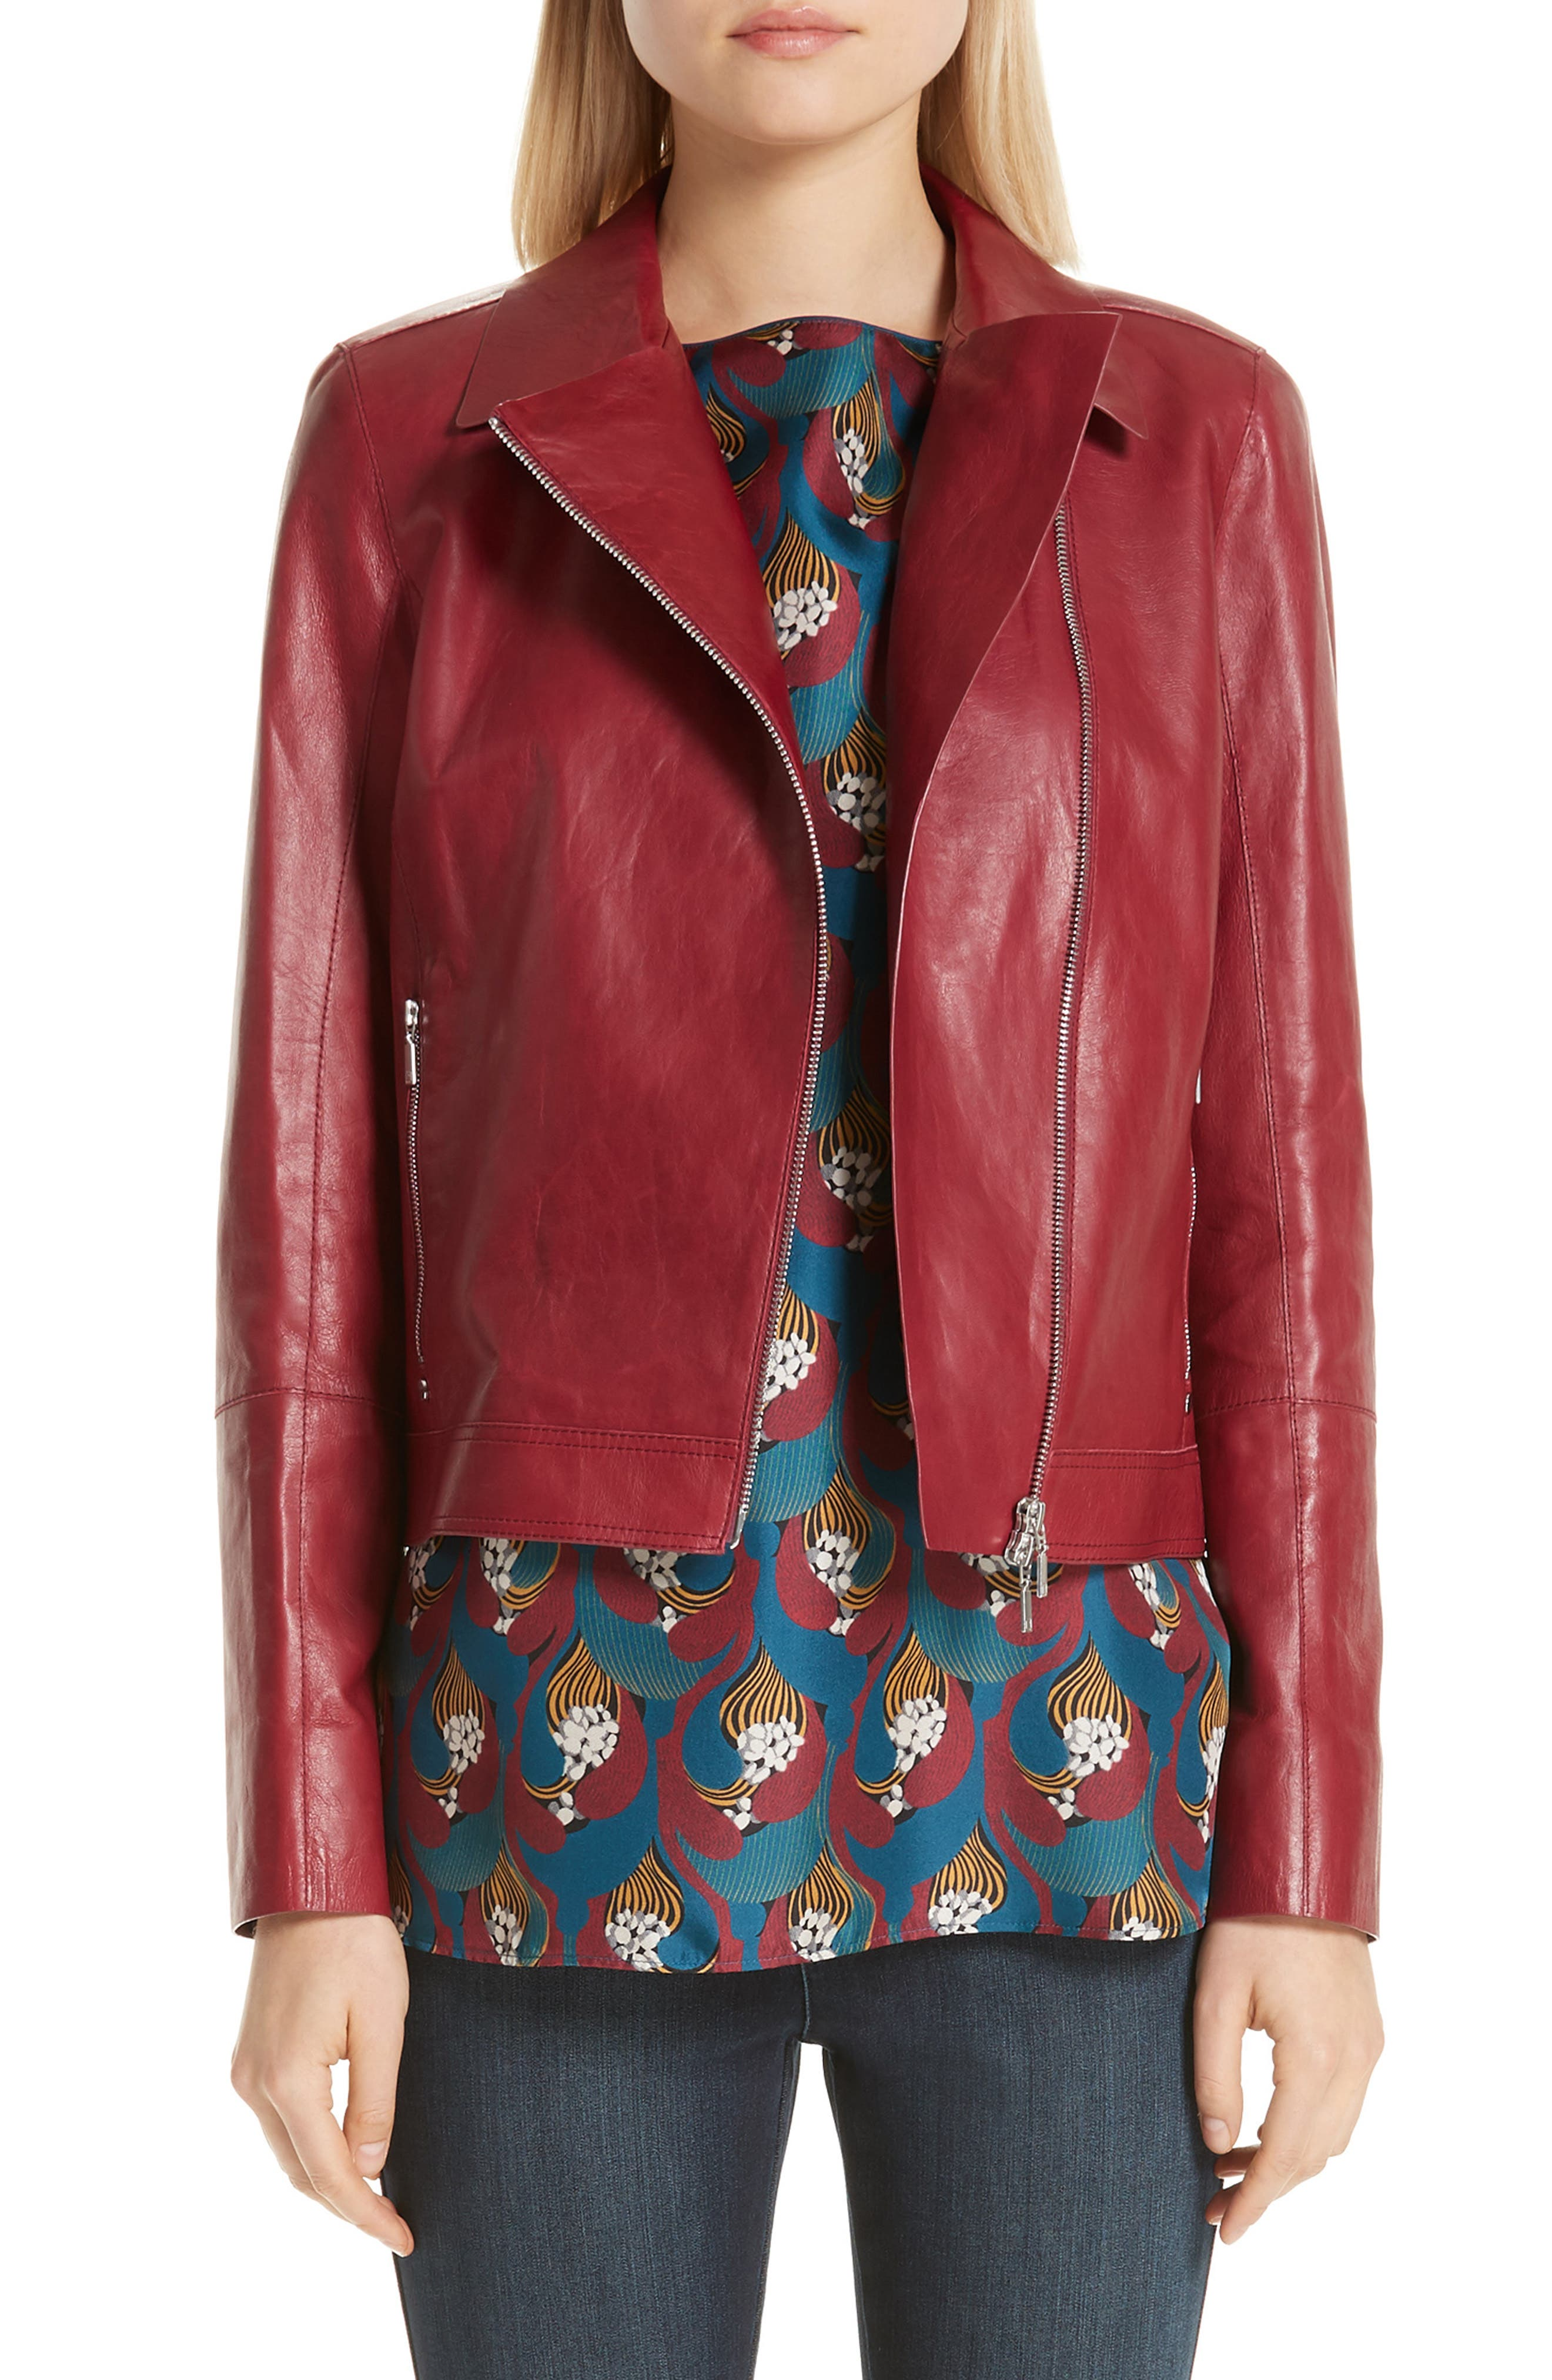 LAFAYETTE 148 NEW YORK Marykate Leather Moto Jacket, Main, color, 600